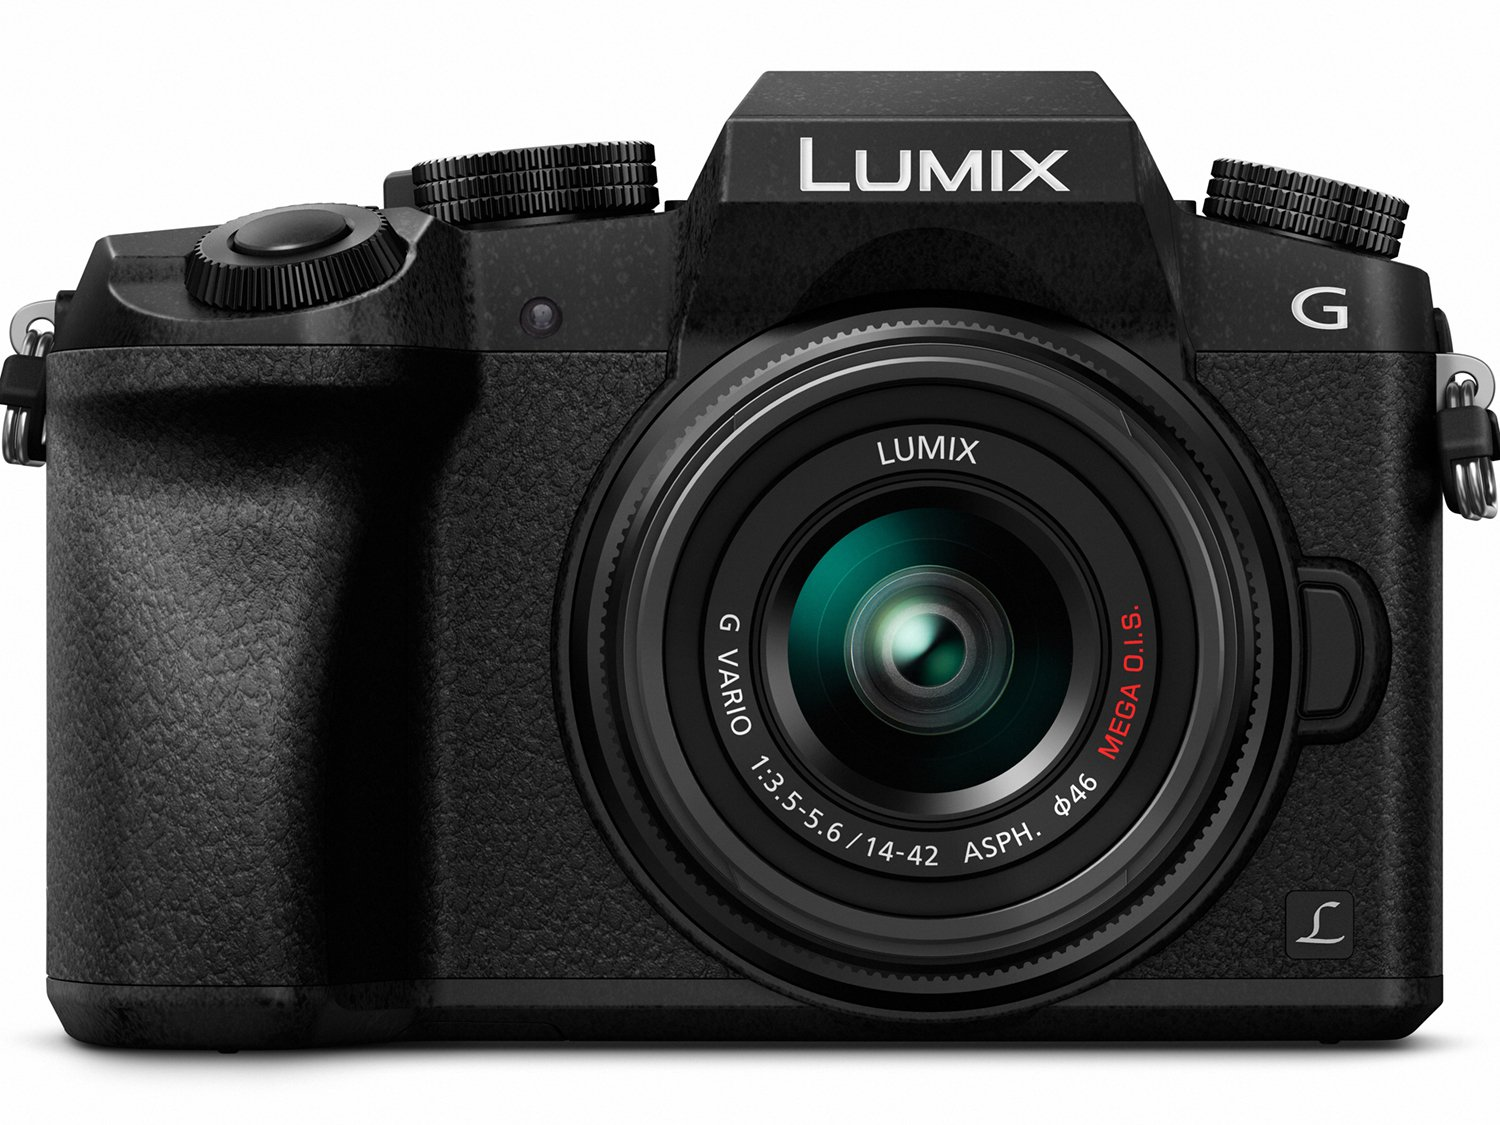 Daniel Hager 71UxWUYqmcL._SL1500_ Black Friday Photography and Videography Deals 2017 Gear  Gear Black Friday